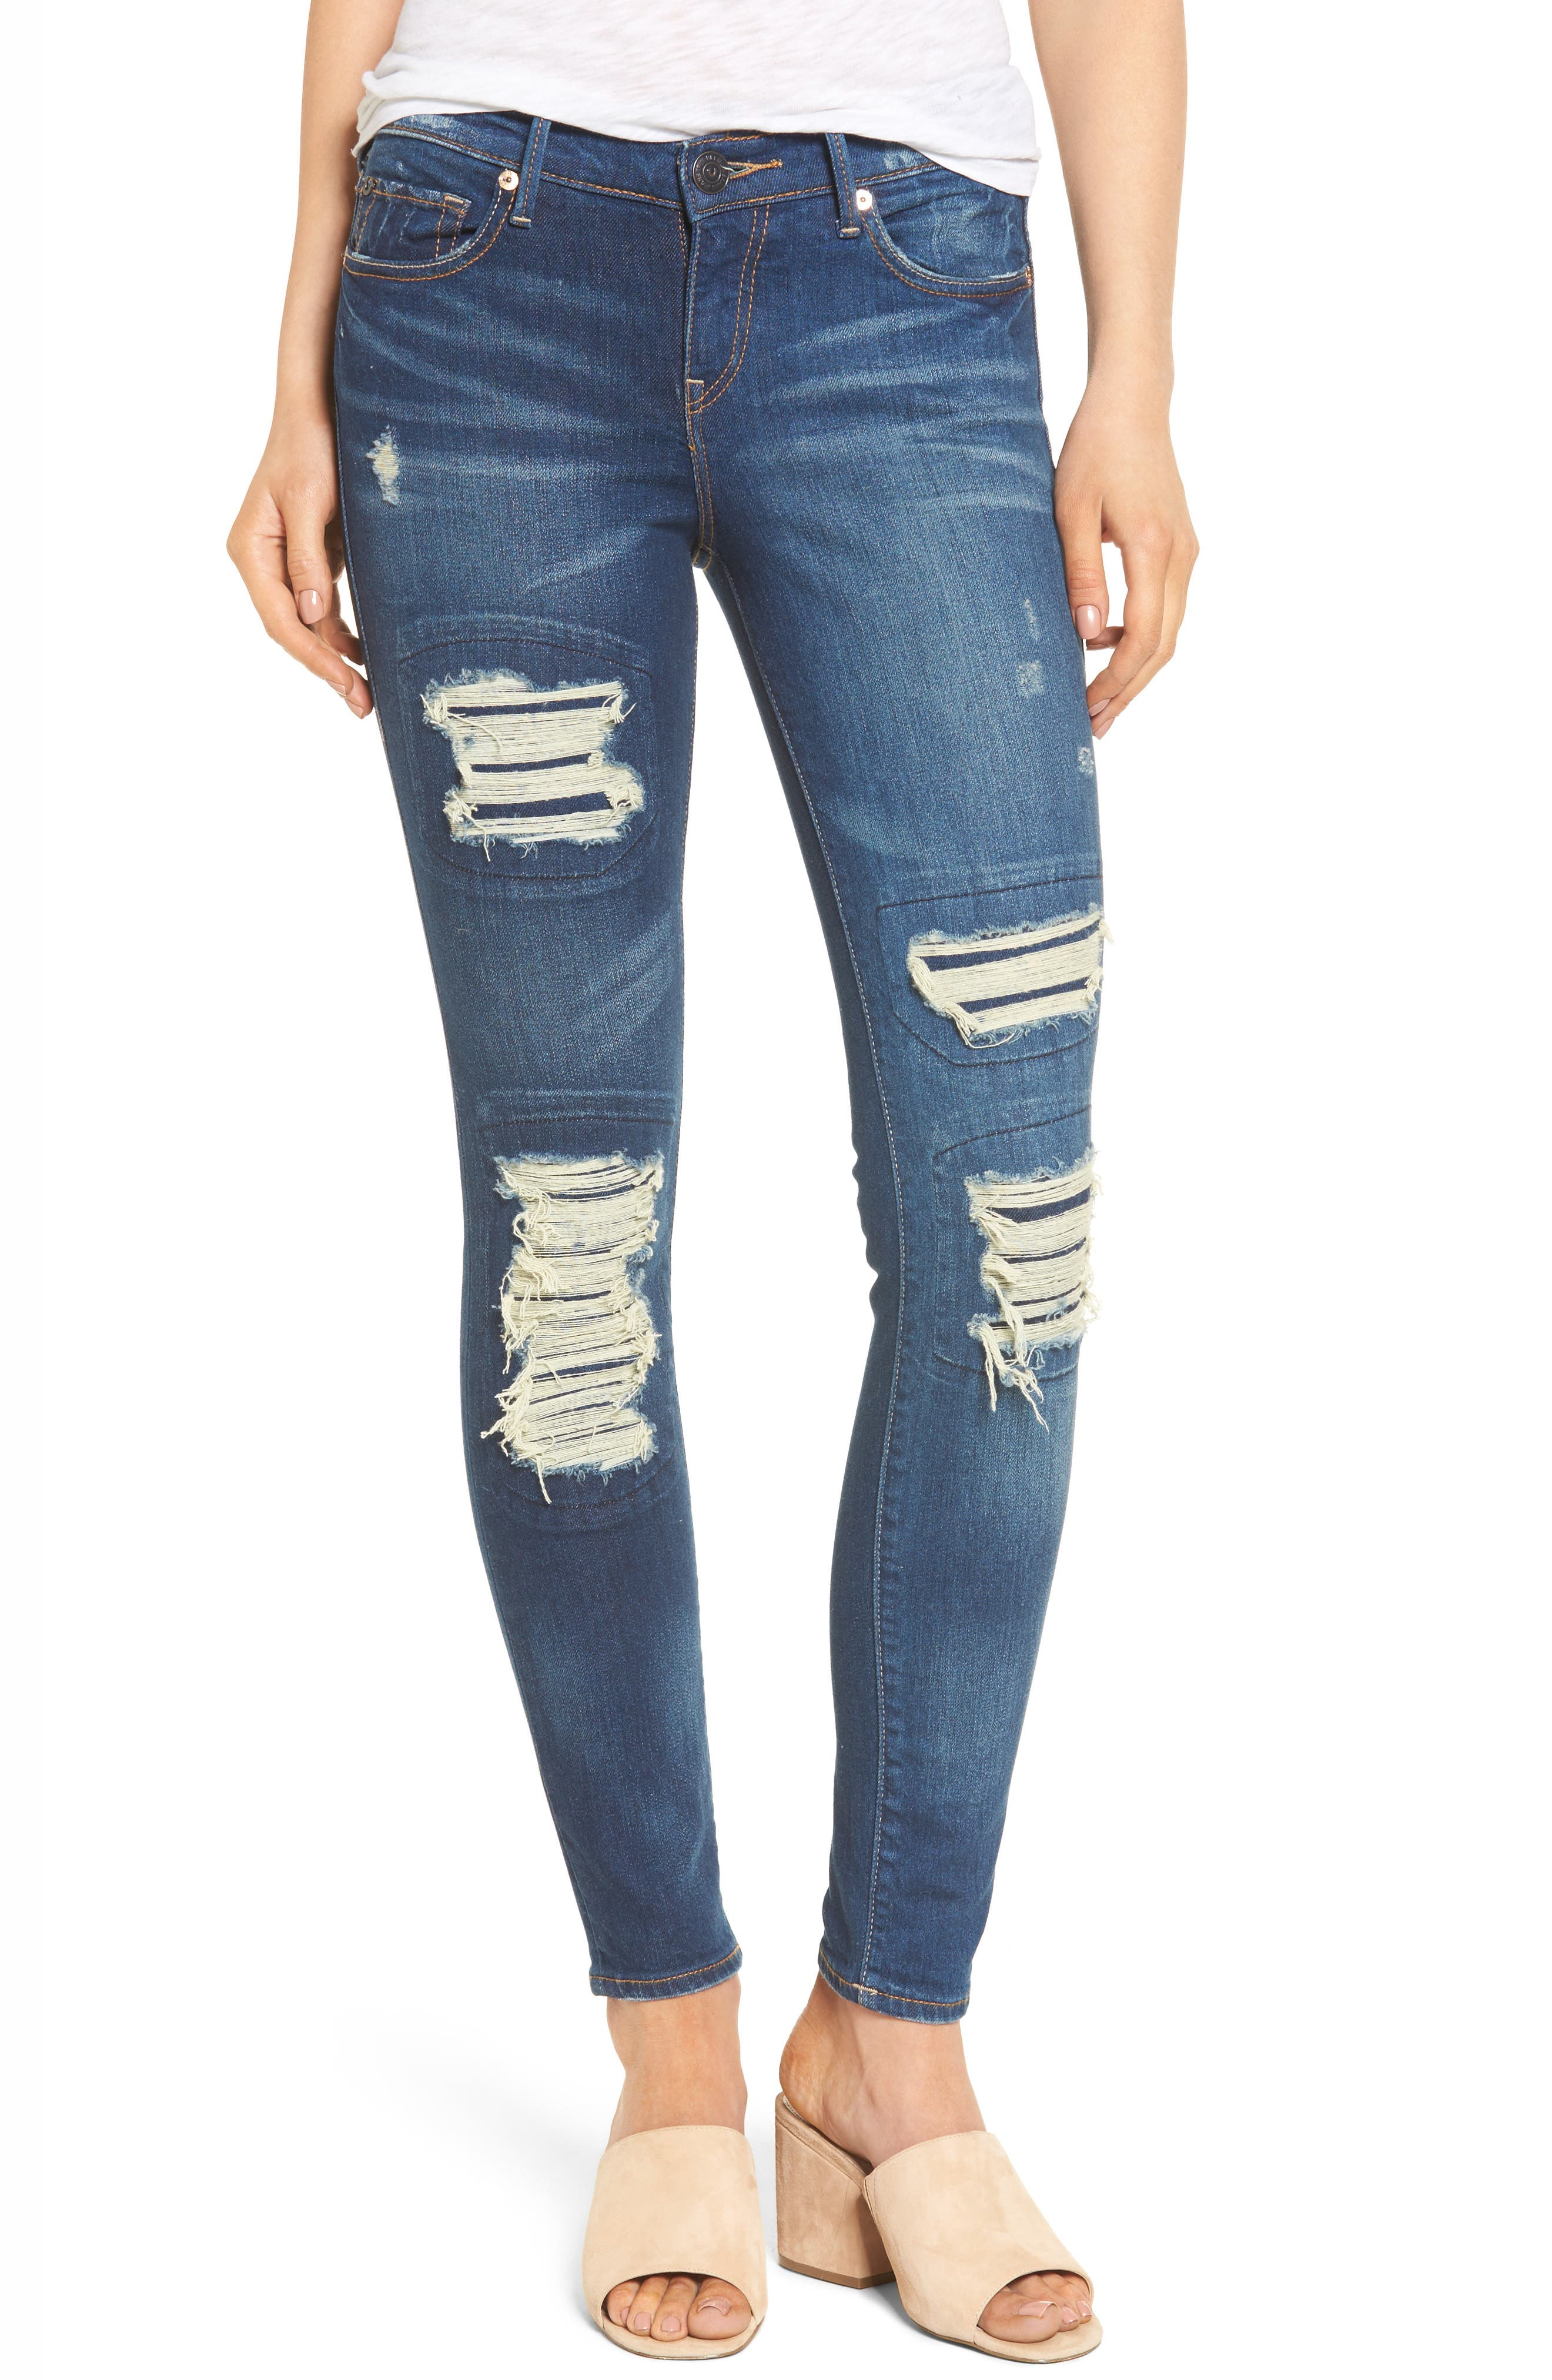 Alternate Image 1 Selected - True Religion Brand Jeans Halle Super Skinny Jeans (Indigo Cadence)